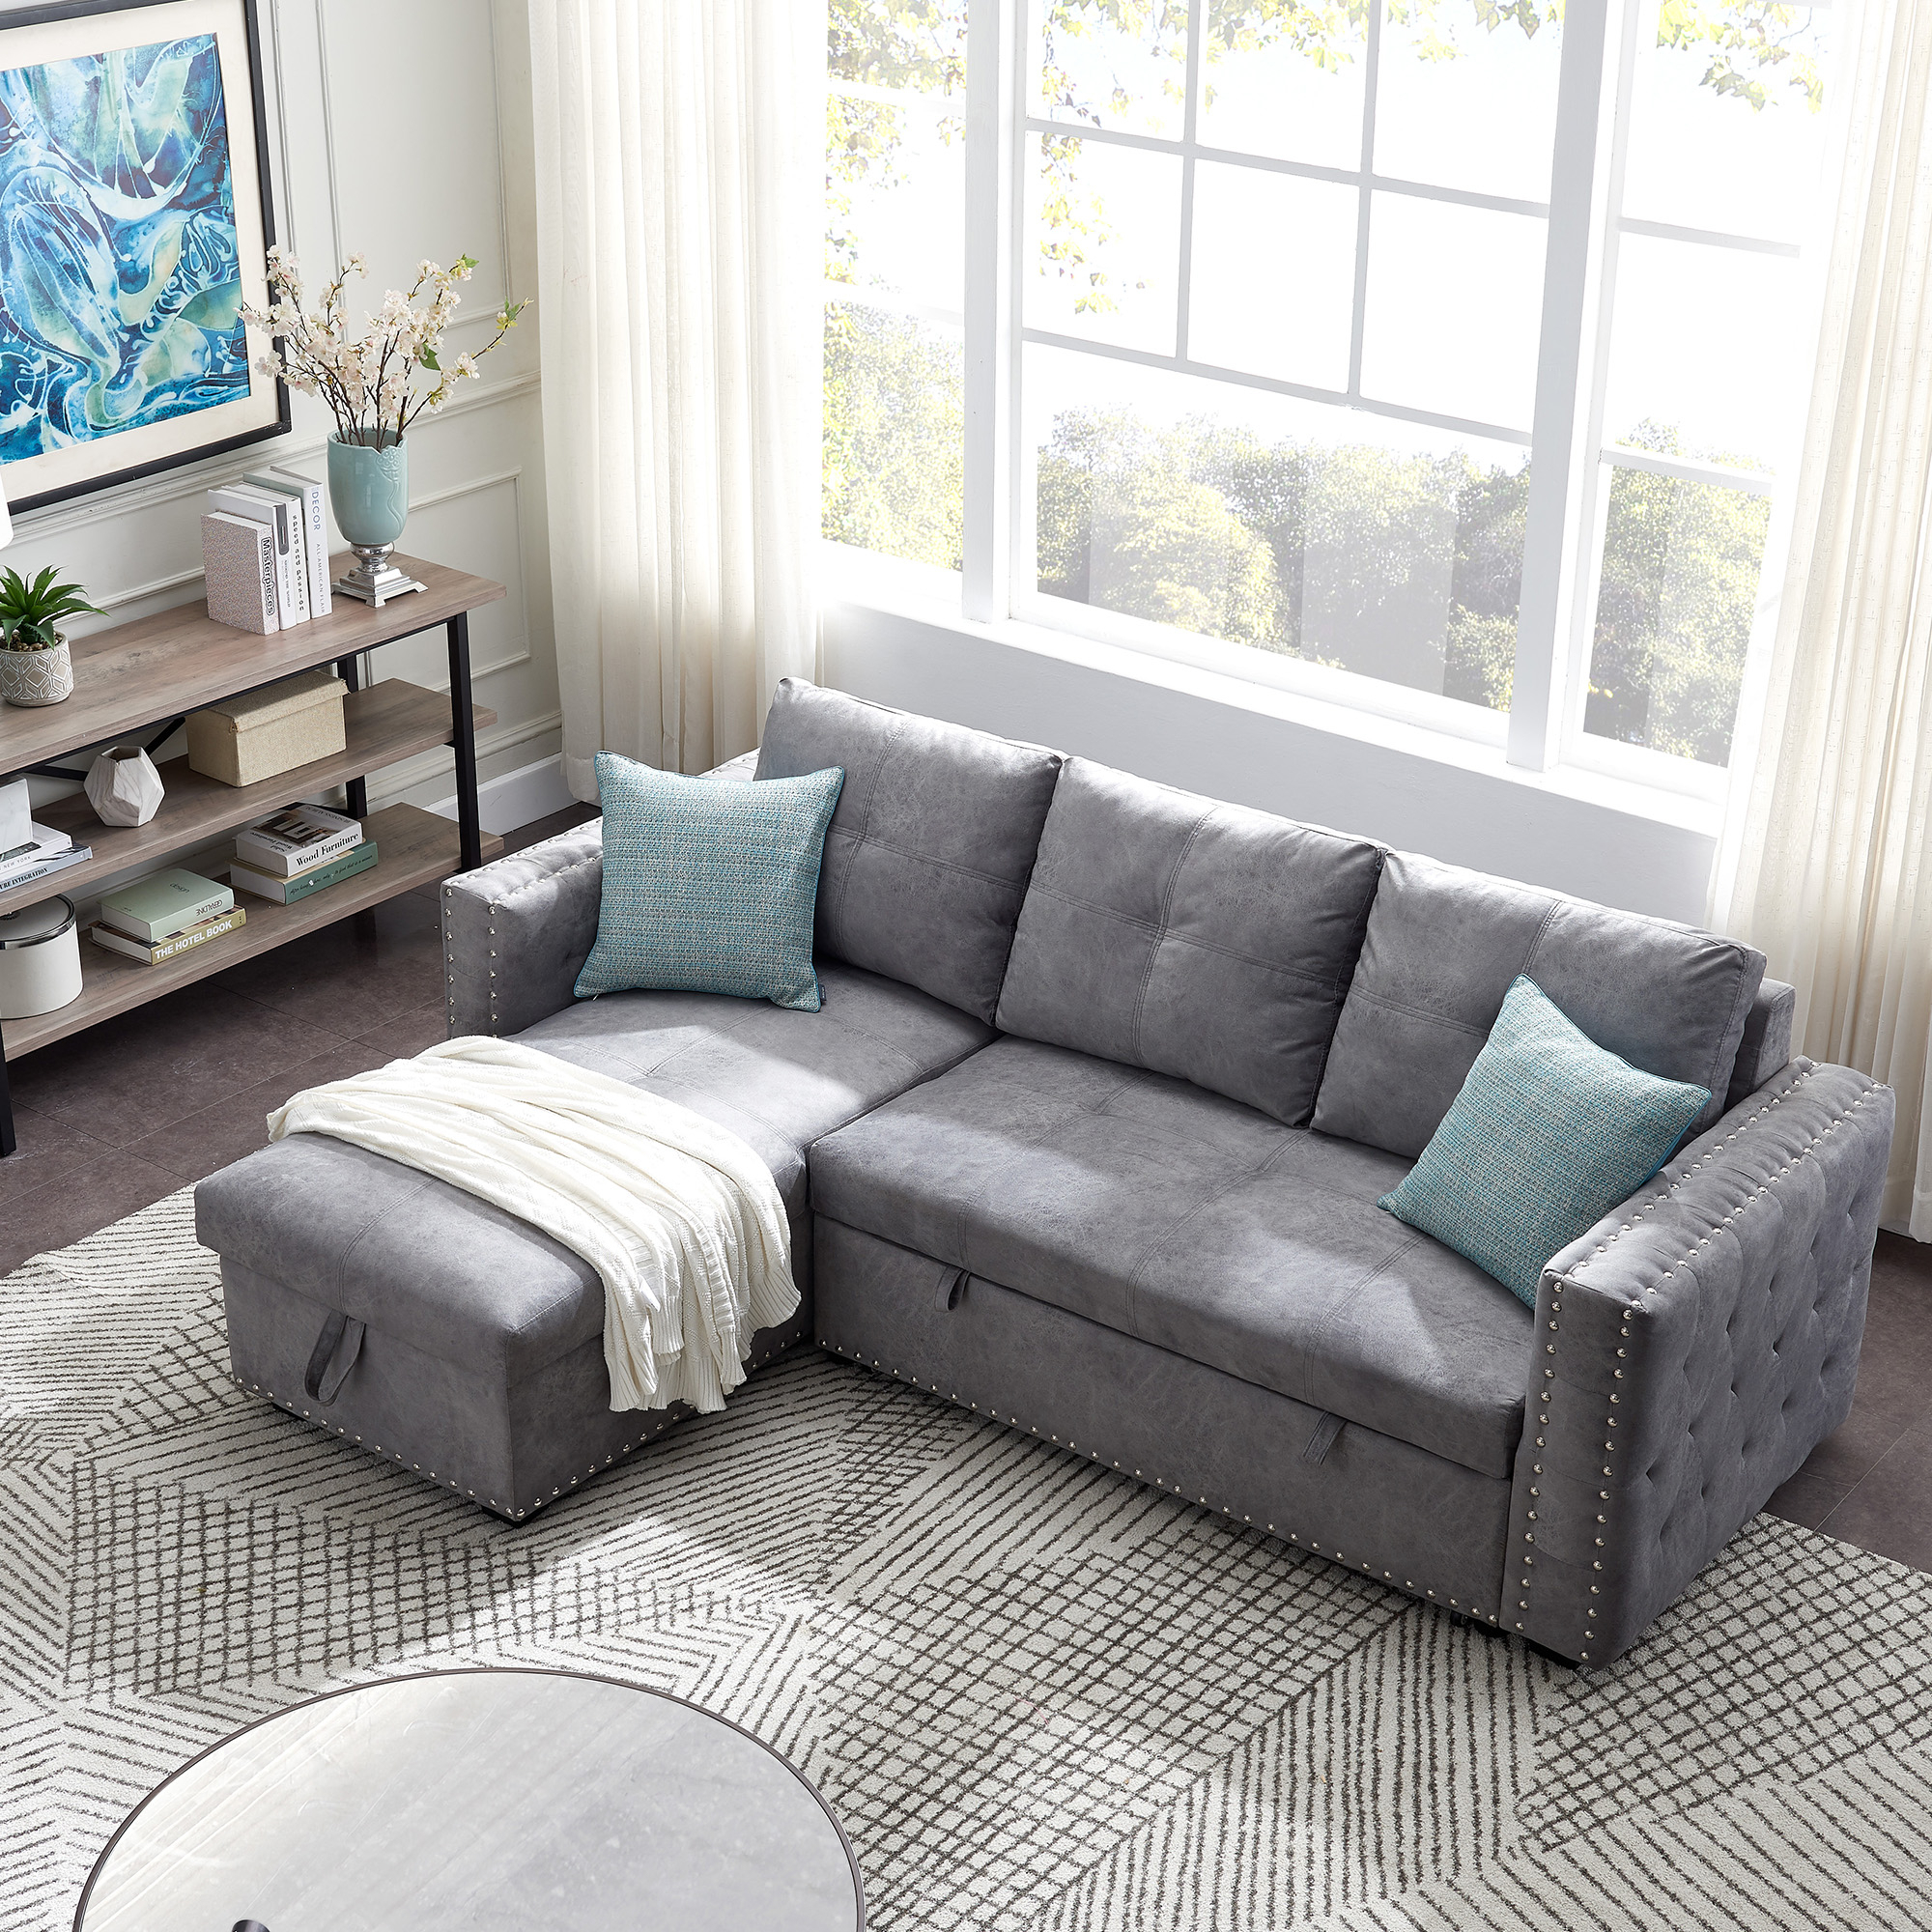 Segmart Sectional Sofas, Modern Upholstered Sofa With Throughout Live It Cozy Sectional Sofa Beds With Storage (View 1 of 15)